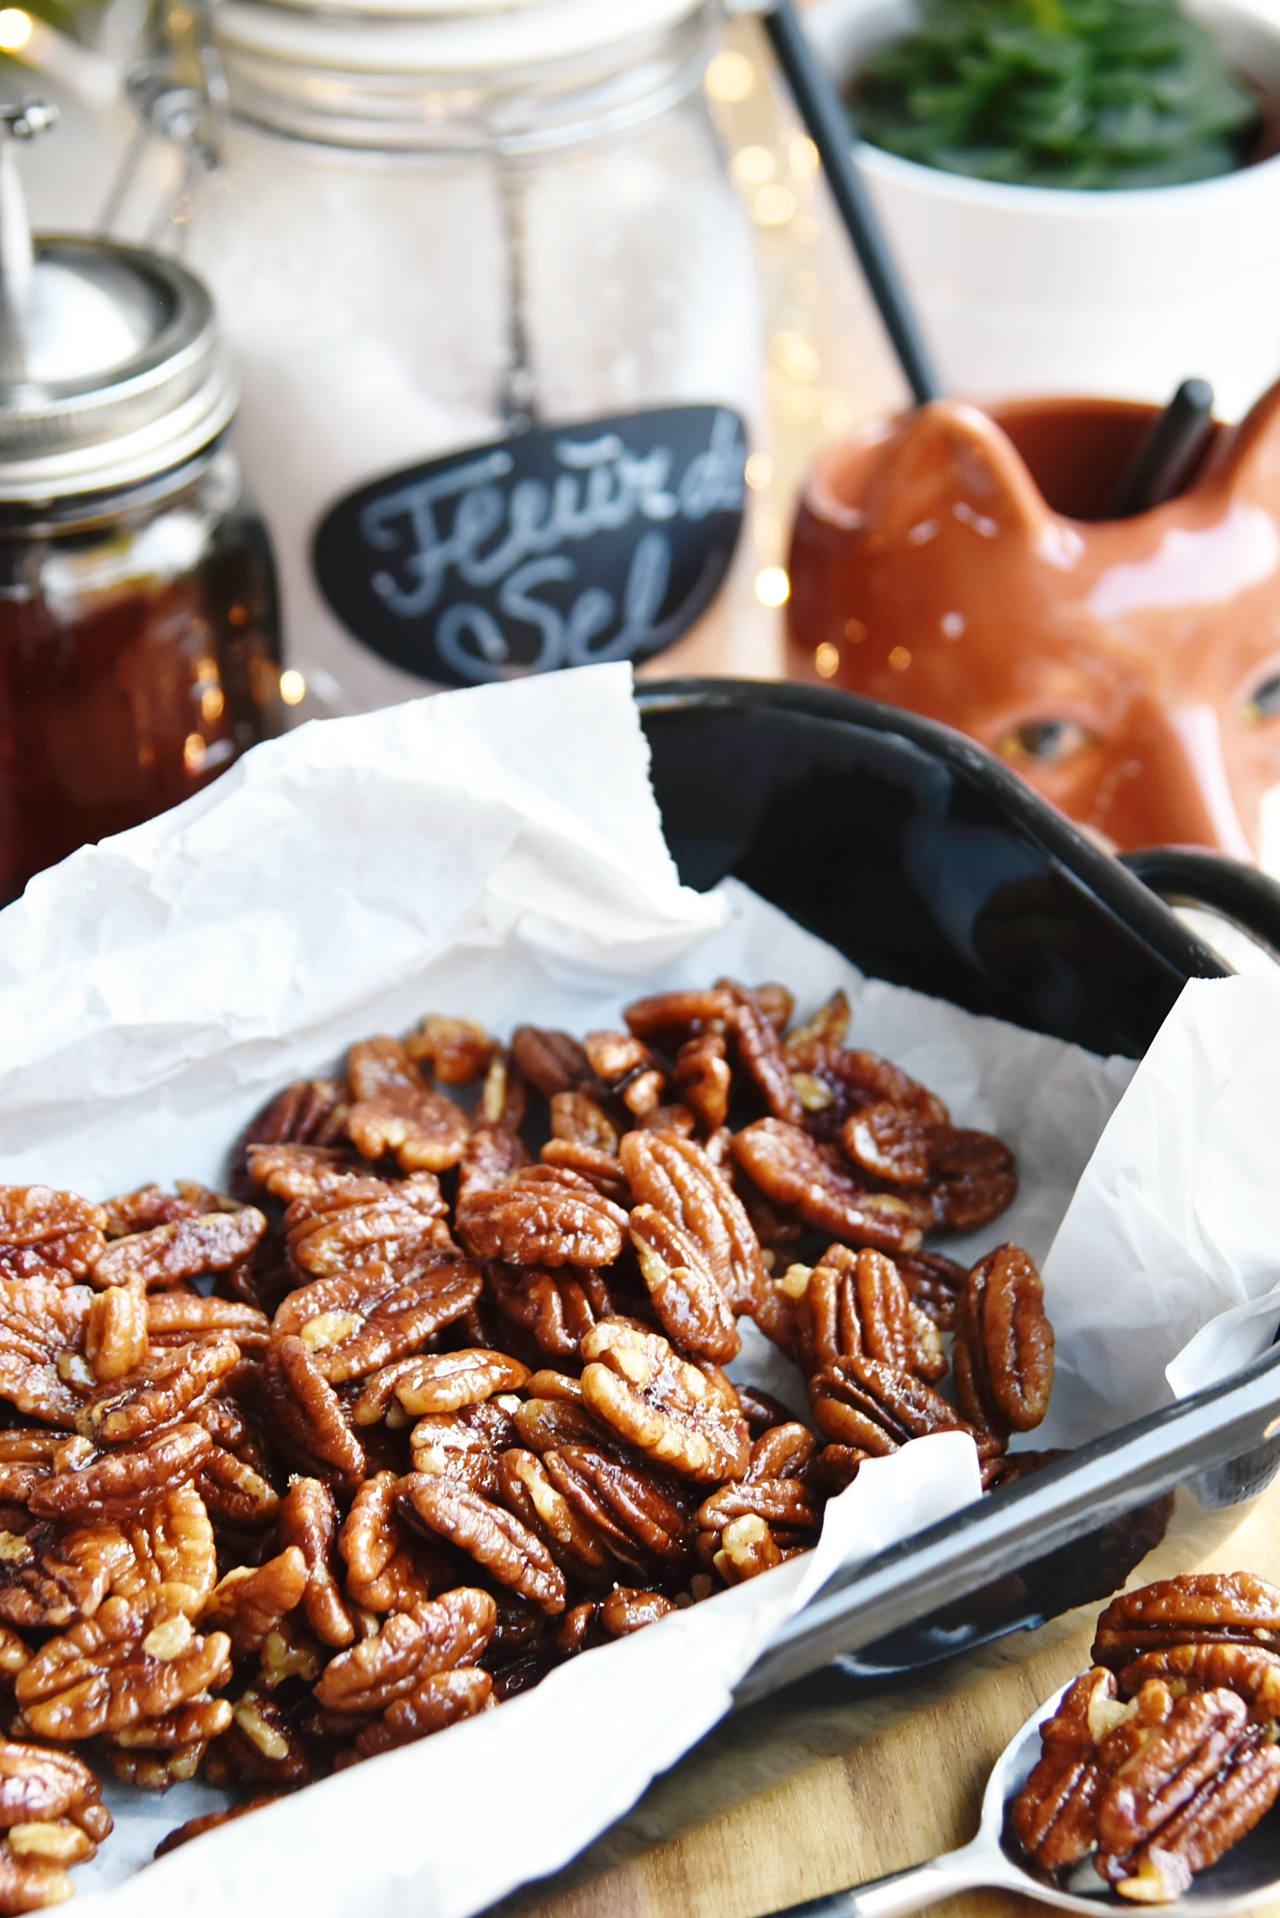 Kandierte Pecan-Nüsse selbermachen - mein schnelles Rezept mit Ahornsirup & Meersalz | Recipe for dandies pecans with maple syrup & sea salt | luziapimpinella.com